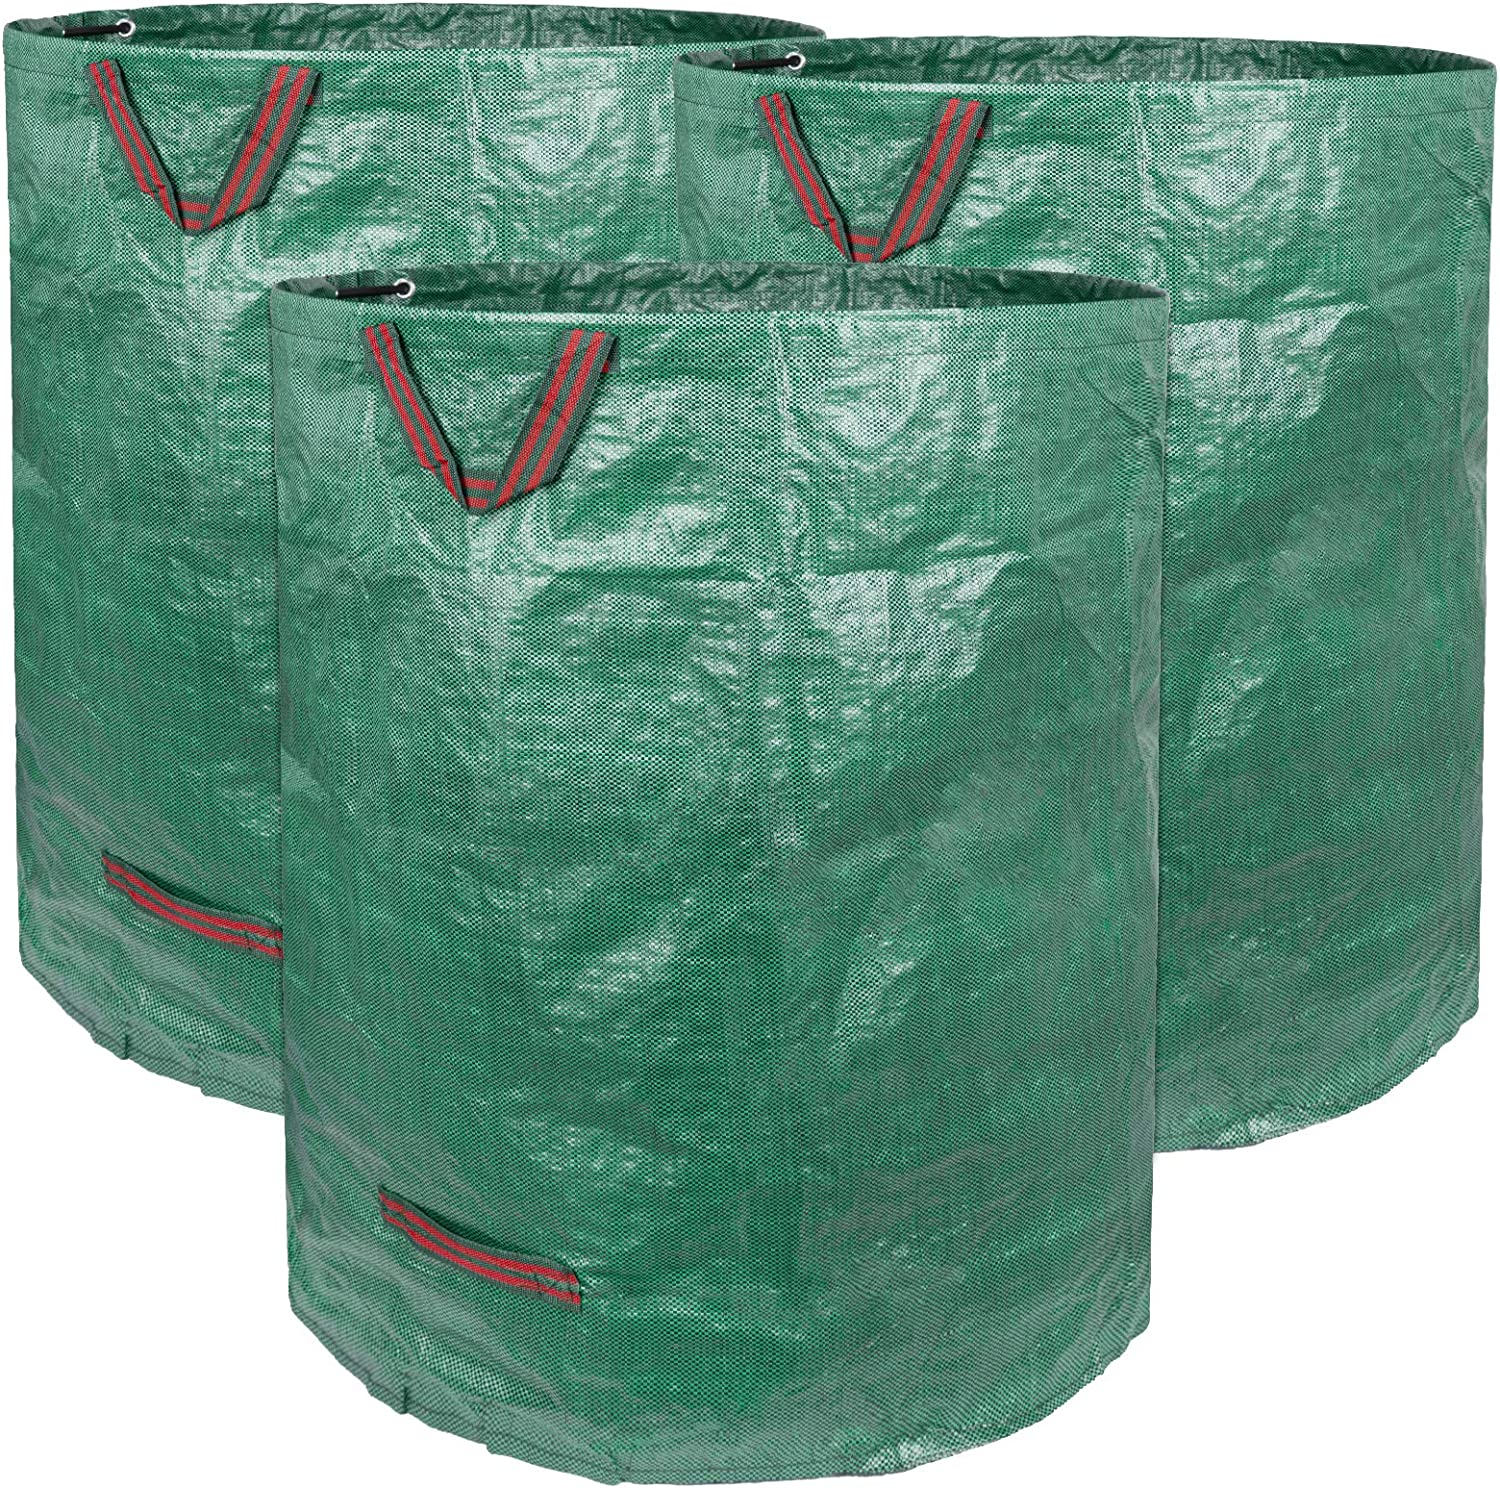 Decorlife 3 Pack 32 Gallons Reusable Garden Waste Bag, Heavy Duty Yard Waste Bag with Dual Handles and Double Bottom Layers, Reusable Garden Leaf Bag for Collecting Leaves Grass Clippings Yard Debris